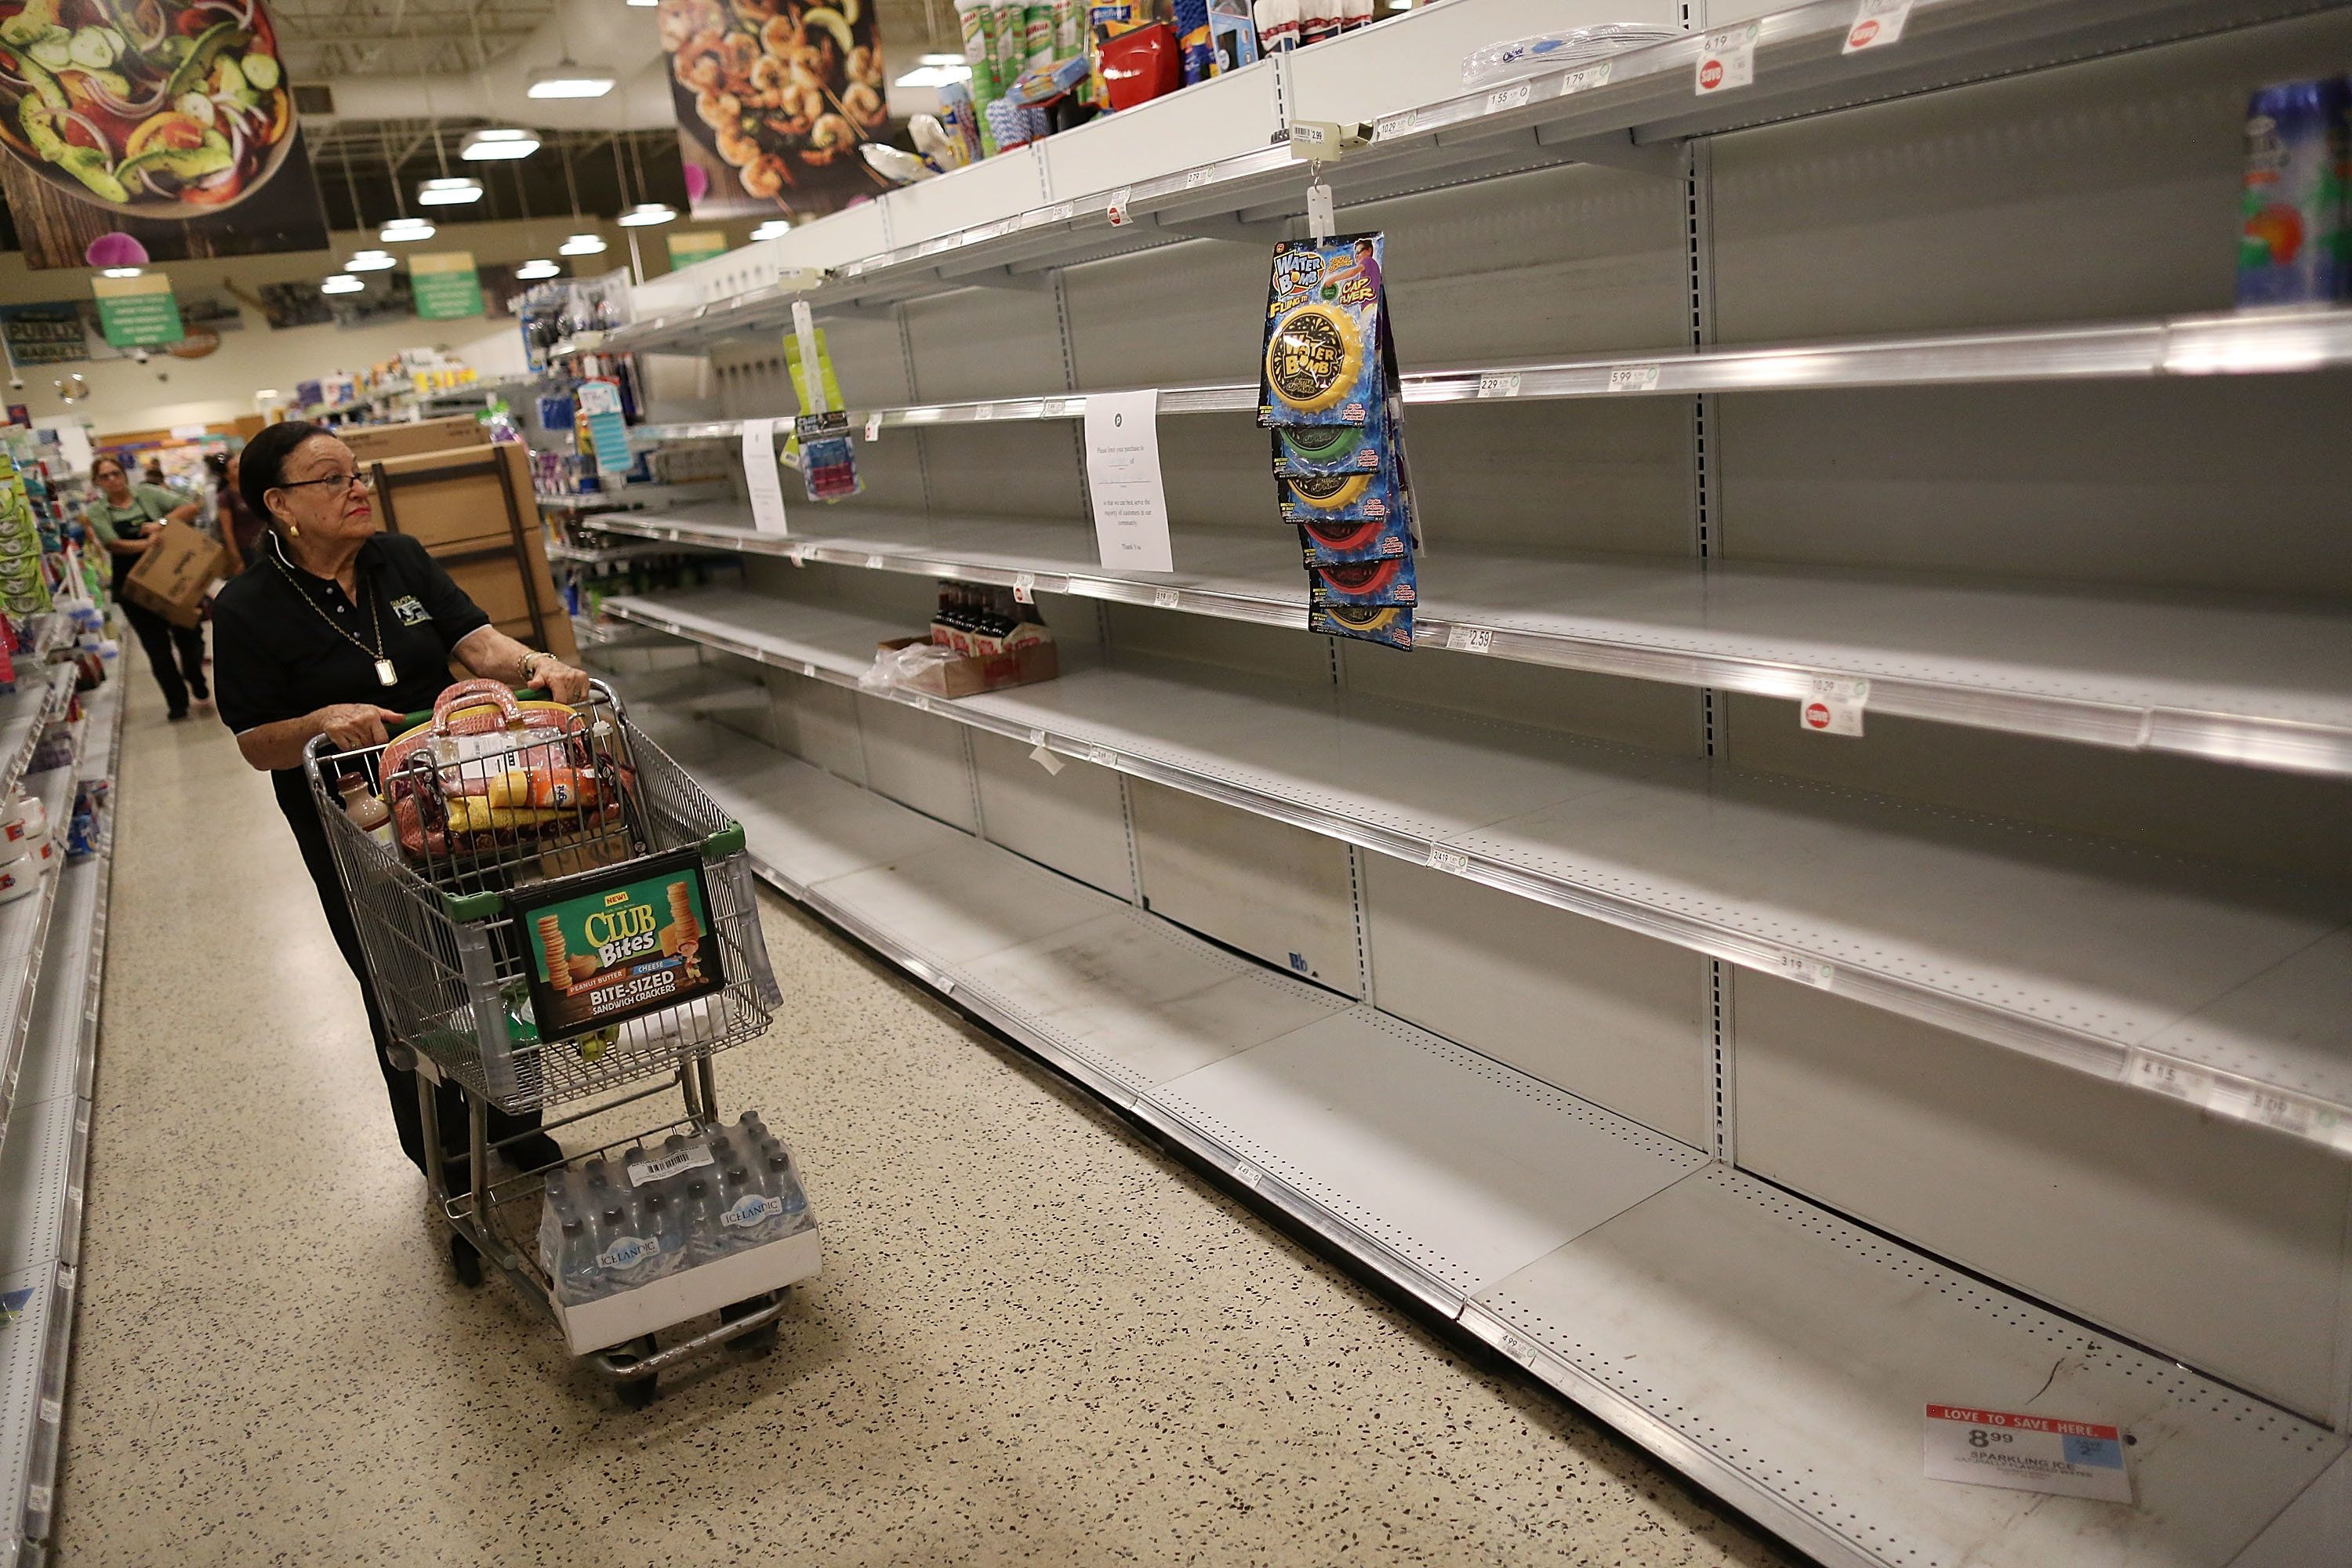 MIAMI, FL - SEPTEMBER 06:  Bare shelves are seen after the supply of bottled water was emptied at a grocery store by people preparing for Hurricane Irma on September 6, 2017 in Miami, Florida. It's still too early to know where the direct impact of the hurricane will take place but the state of Florida is in the area of possible landfall.  (Photo by Joe Raedle/Getty Images)